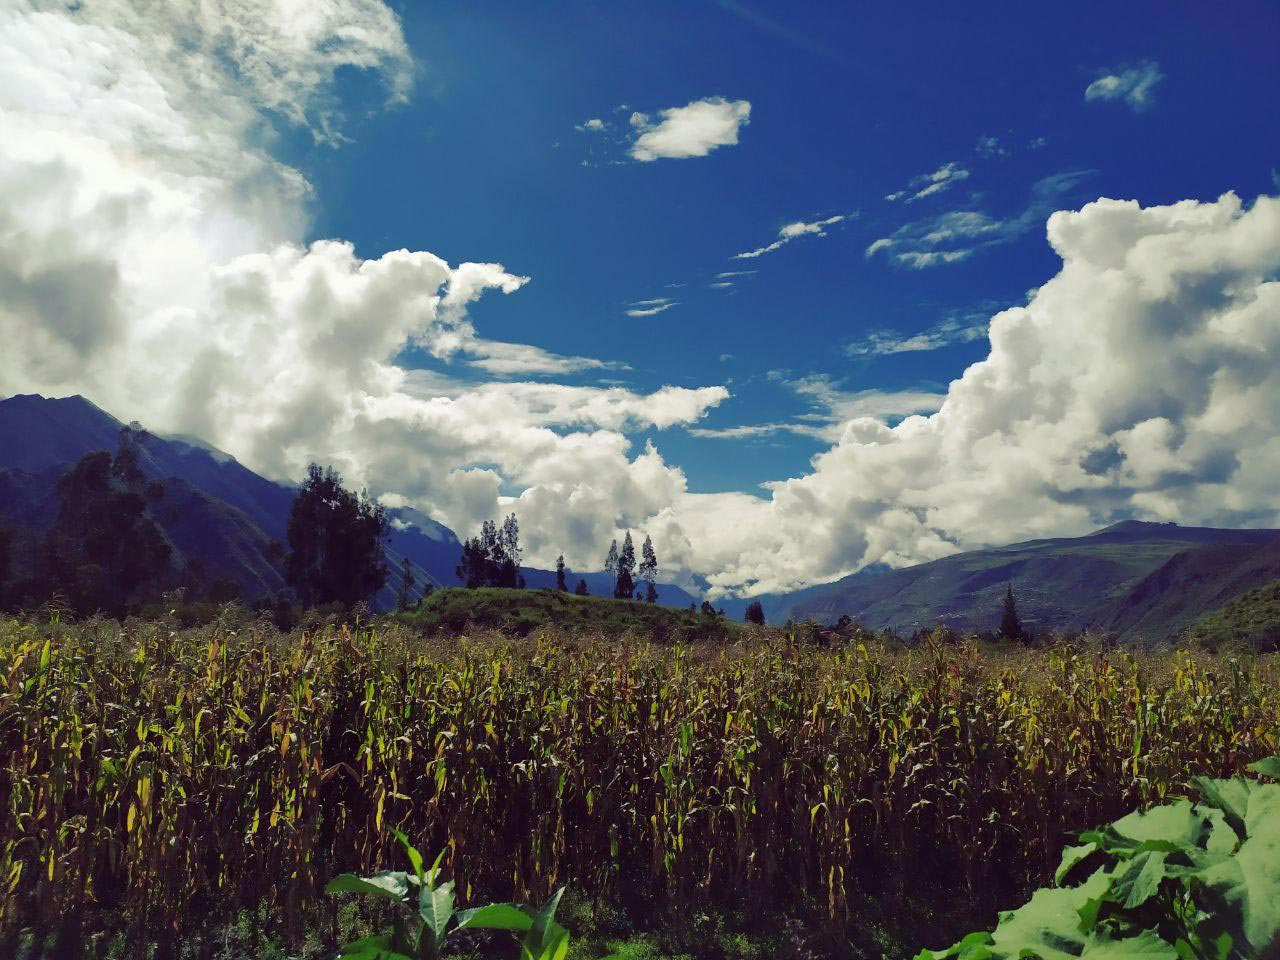 Inspired Living: A connection with Peru